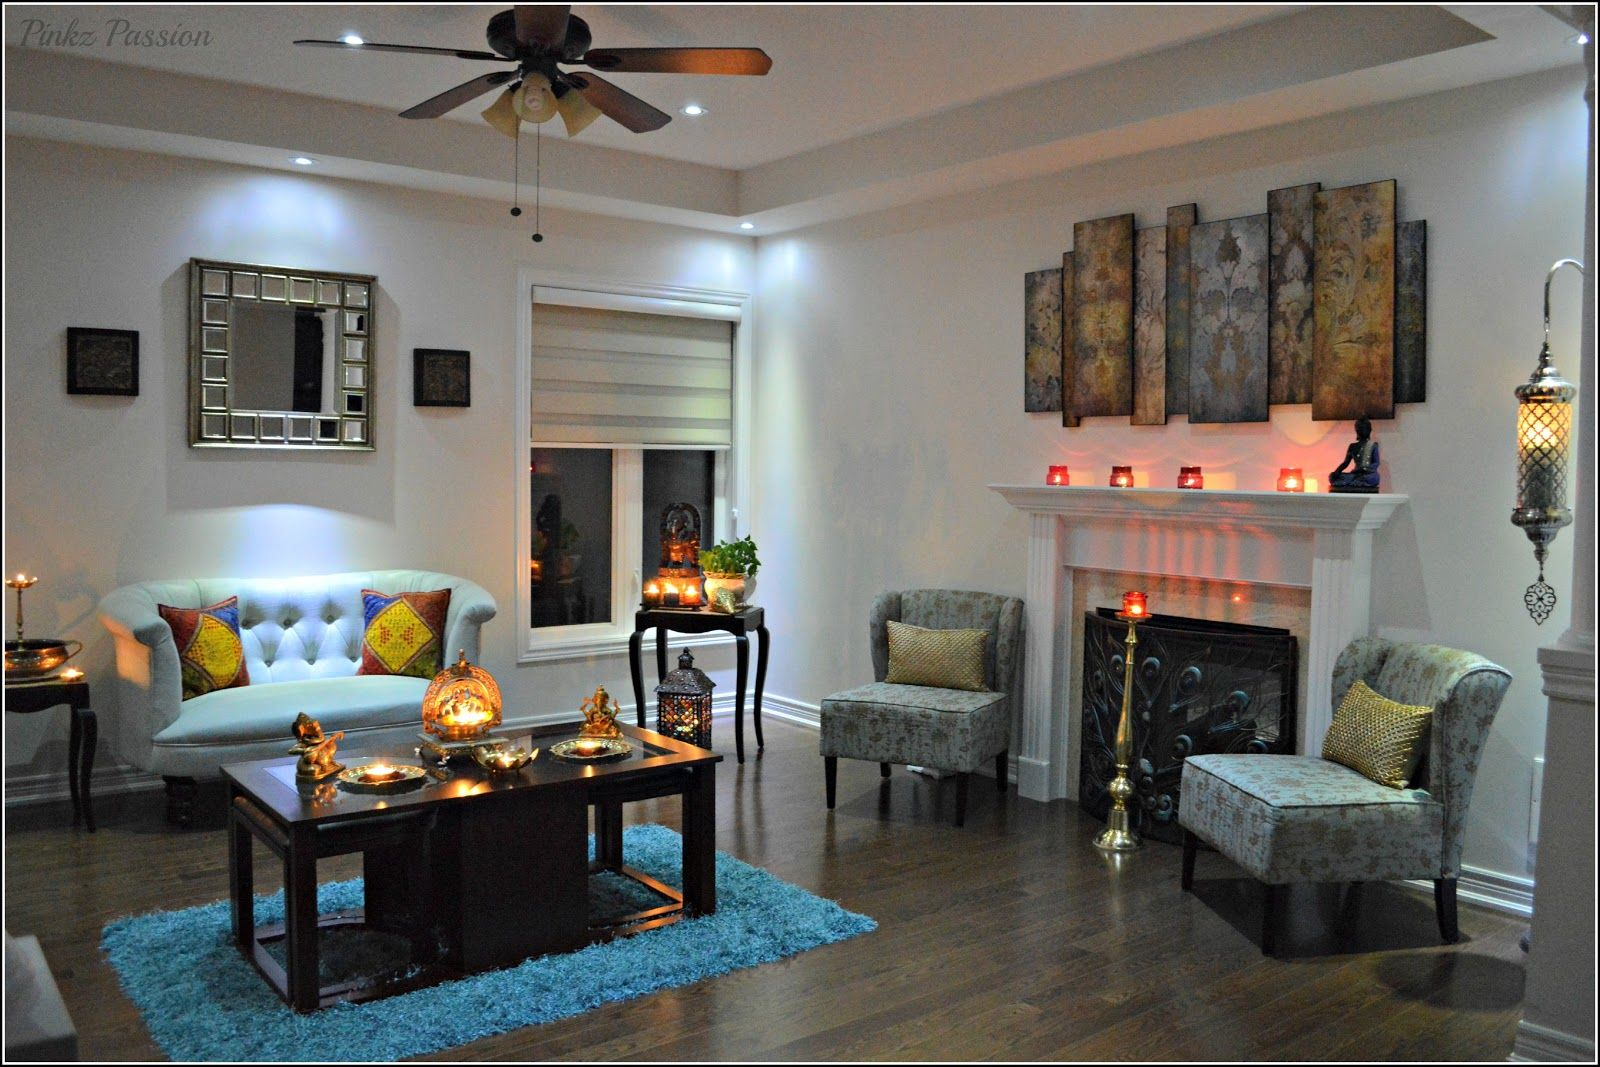 Diwali Inspiration - 2 (Home Tour) | ind | Pinterest | Diwali ... for Diwali Decoration Ideas For Living Room  45ifm